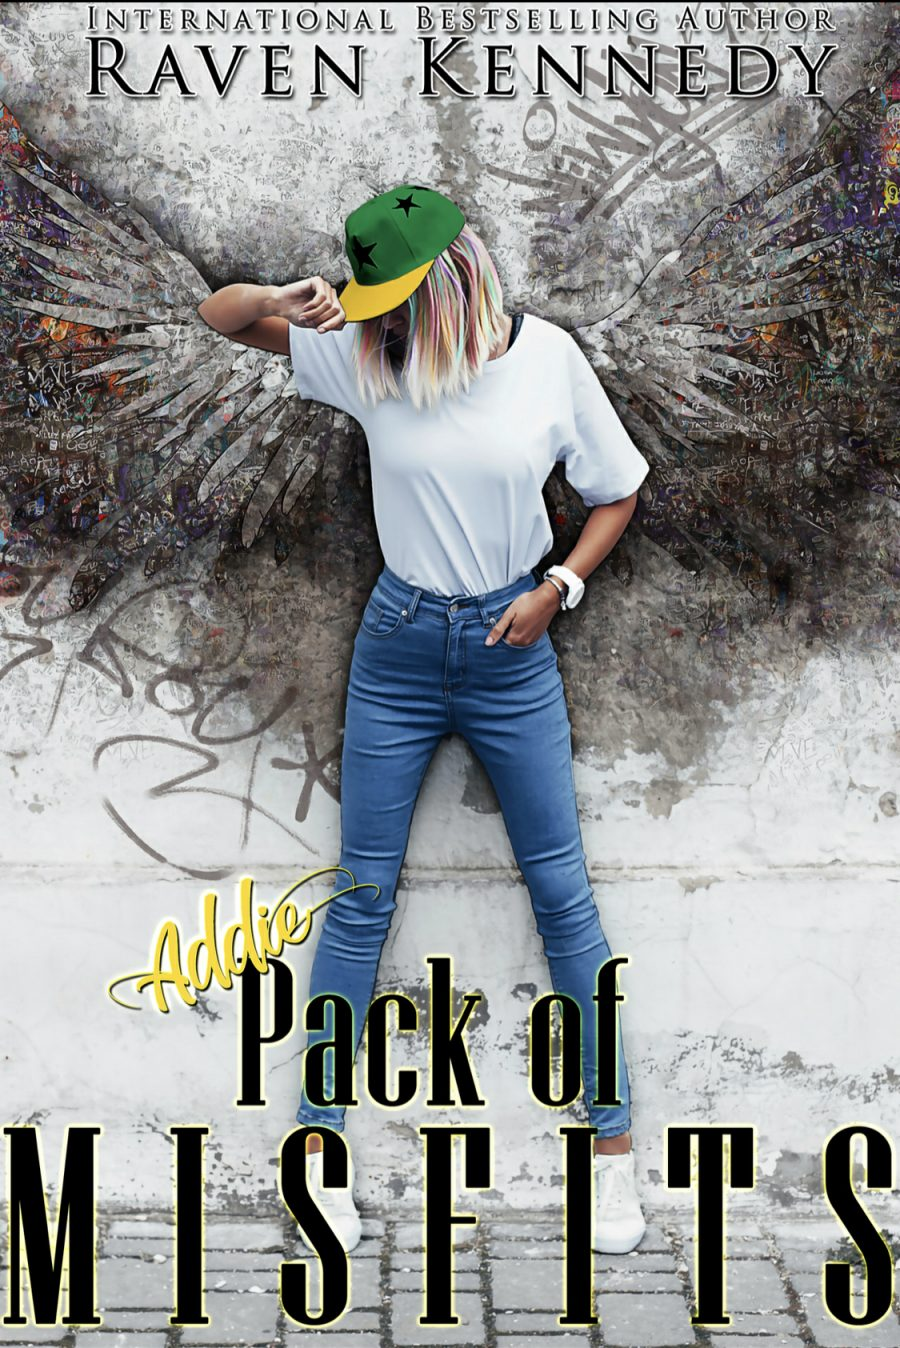 Addie (Pack of Misfits - #1) by Raven Kennedy - A Book Review #BookReview #FastBurn #RH #PNR #ReverseHarem #HEA #Paranormal #KindleUnlimited #MustRead #KU #Shifters